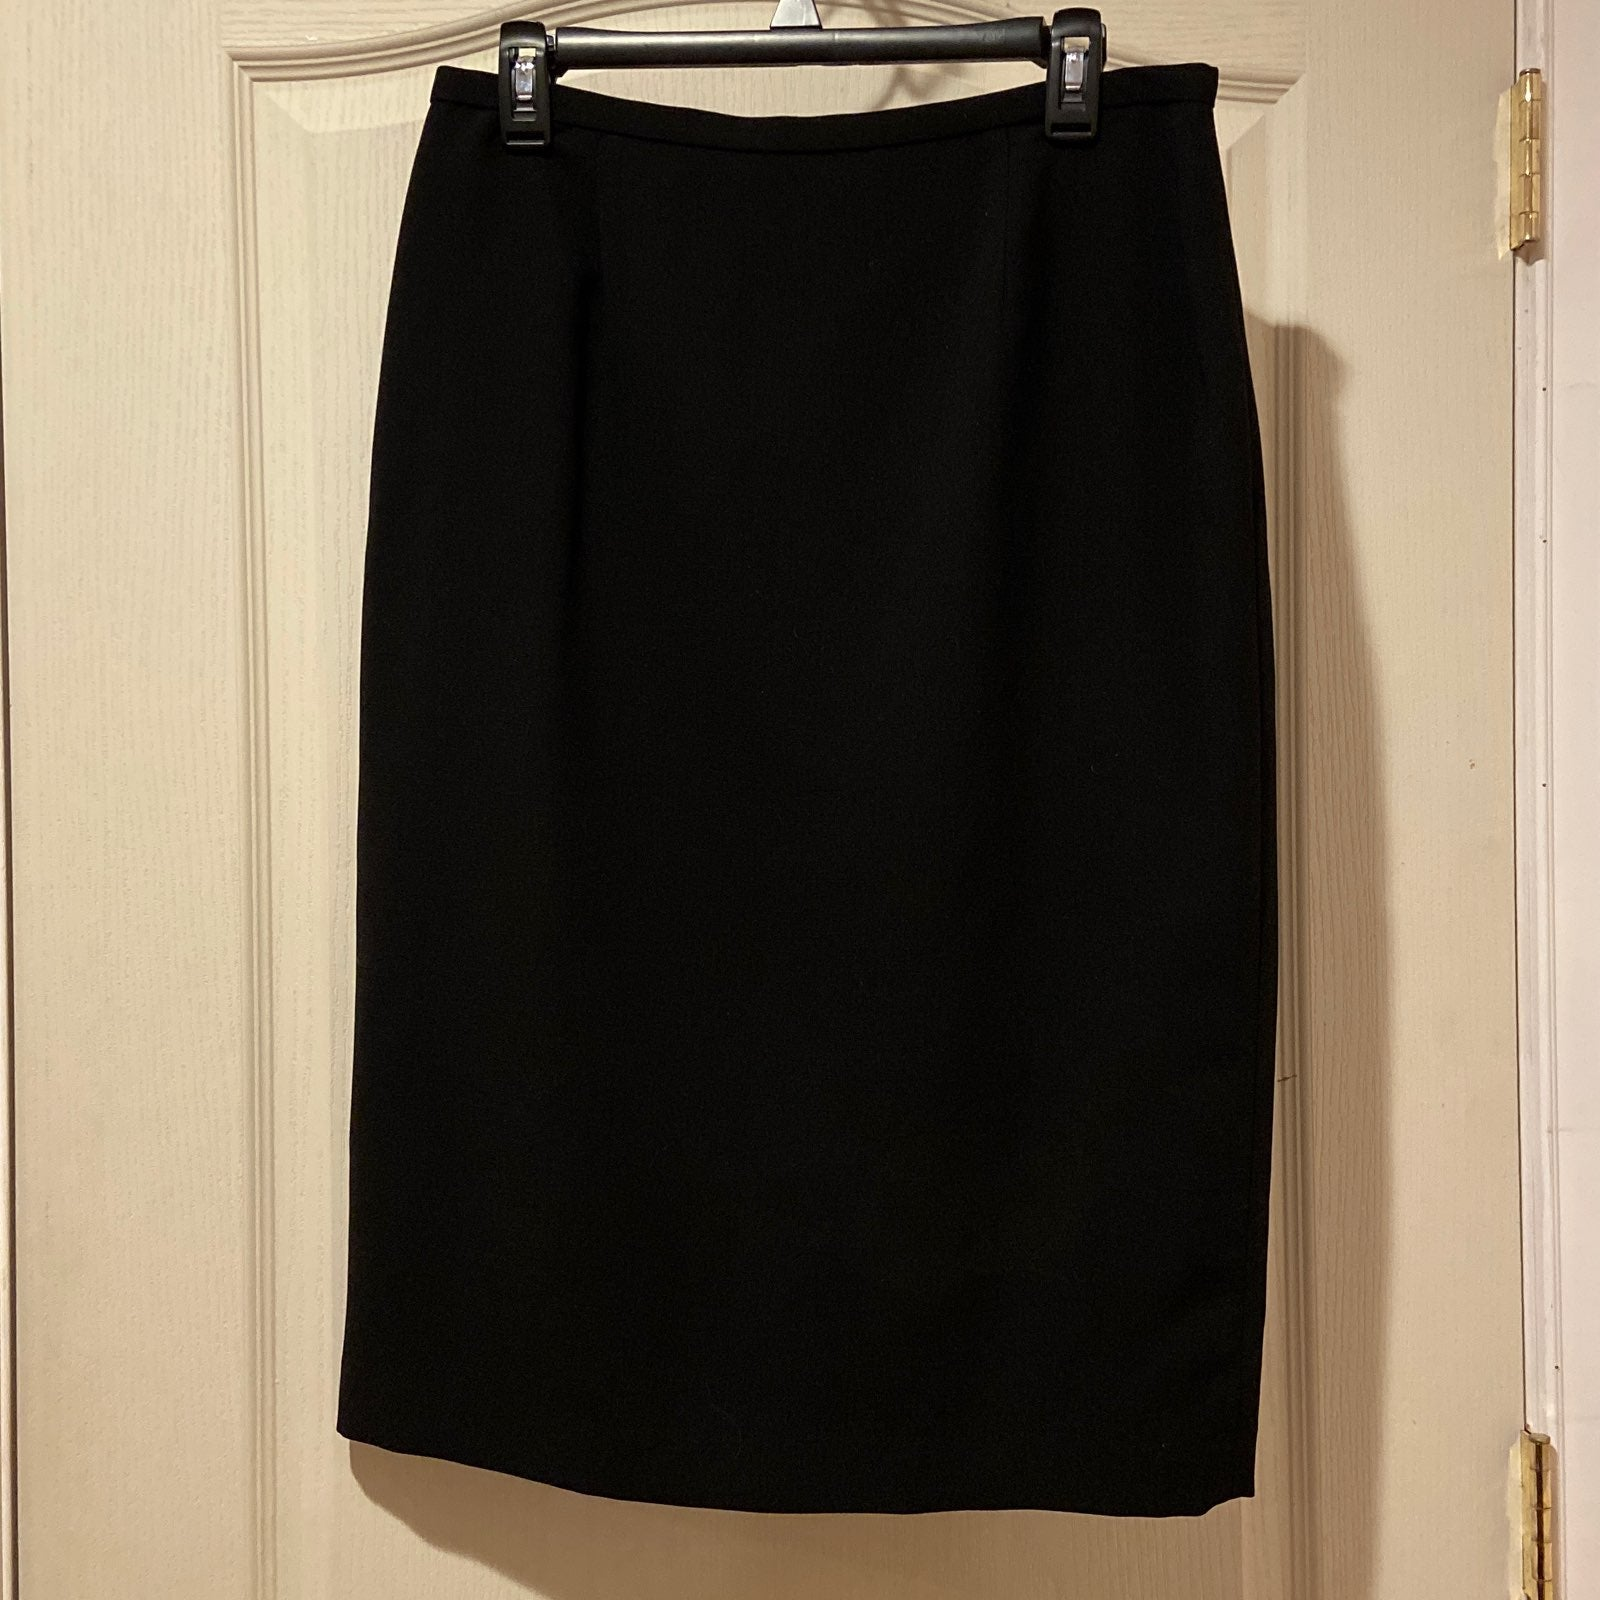 Calvin Klein Black Pencil Skirt